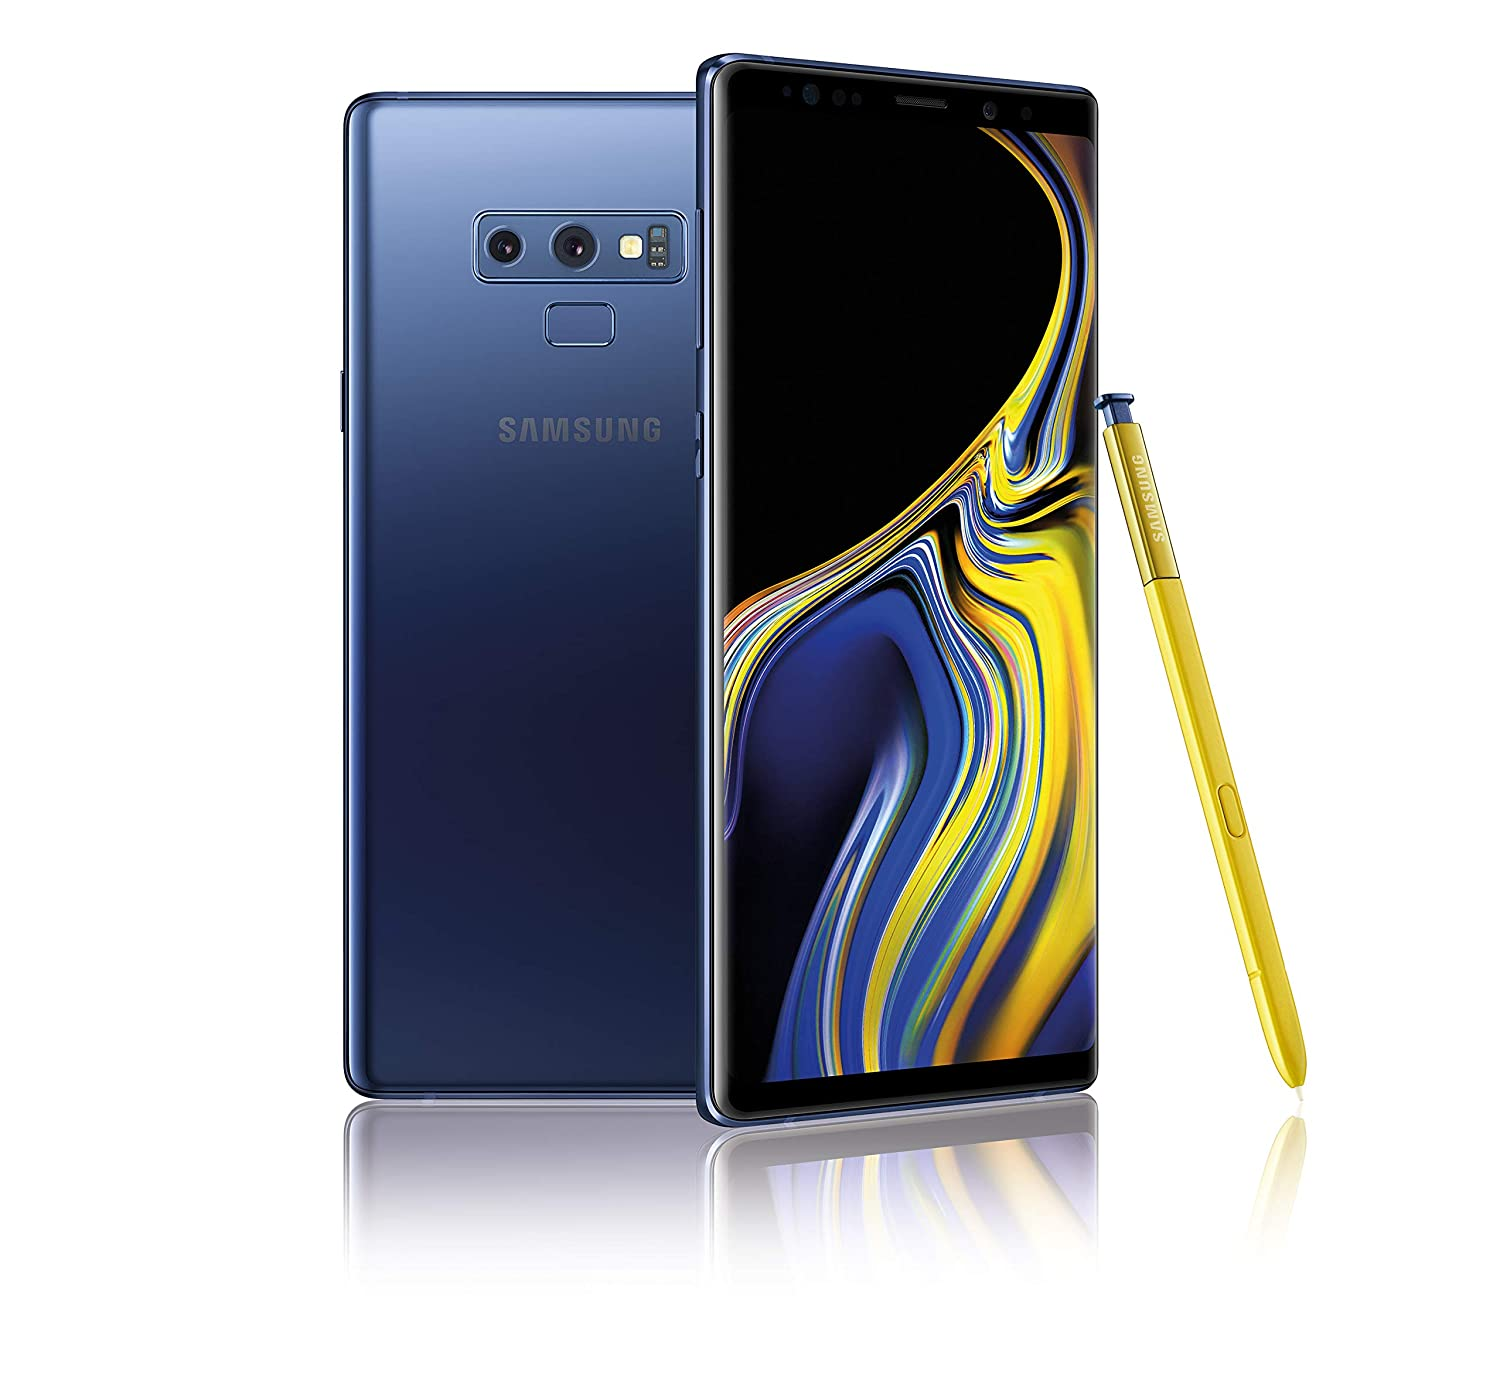 85e9191d5 Samsung Galaxy Note 9 128 GB 6.4-Inch Android 8.1 Oreo  Amazon.co.uk   Electronics